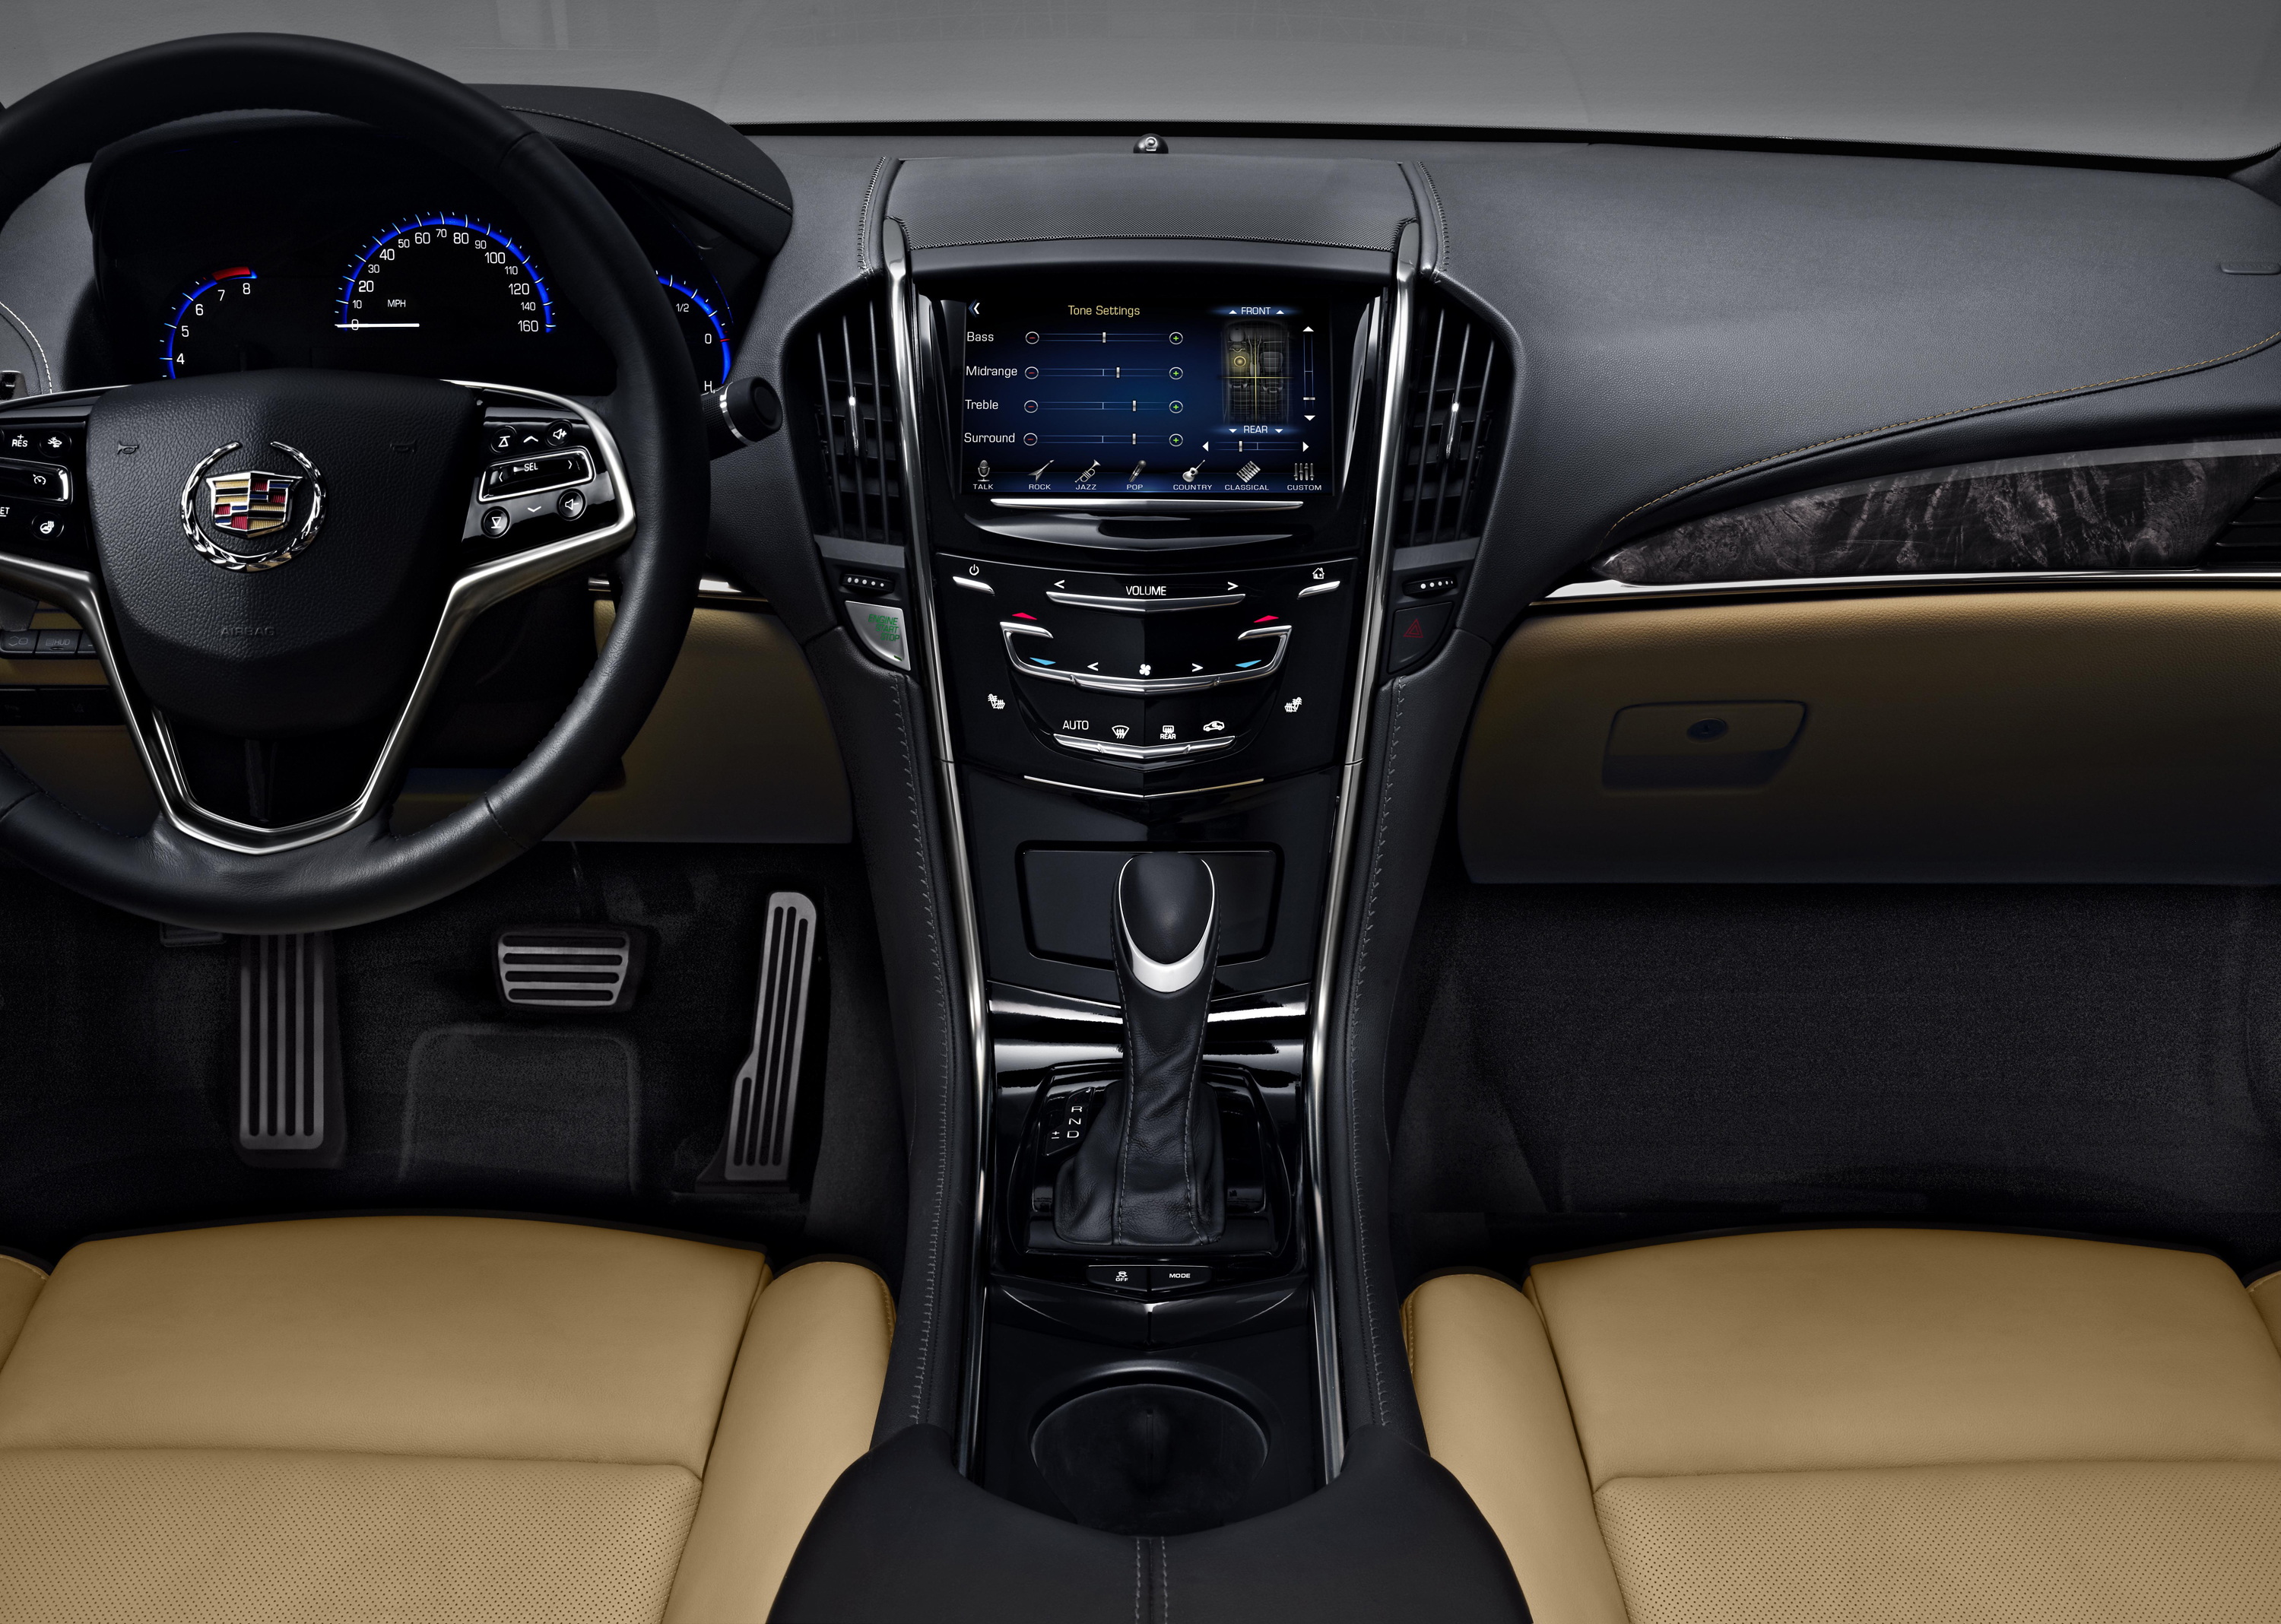 2014-CADILLAC-ATS-CHALLENGES-THE-WORLD-BEST-COMPACT-LUXURY-CARS